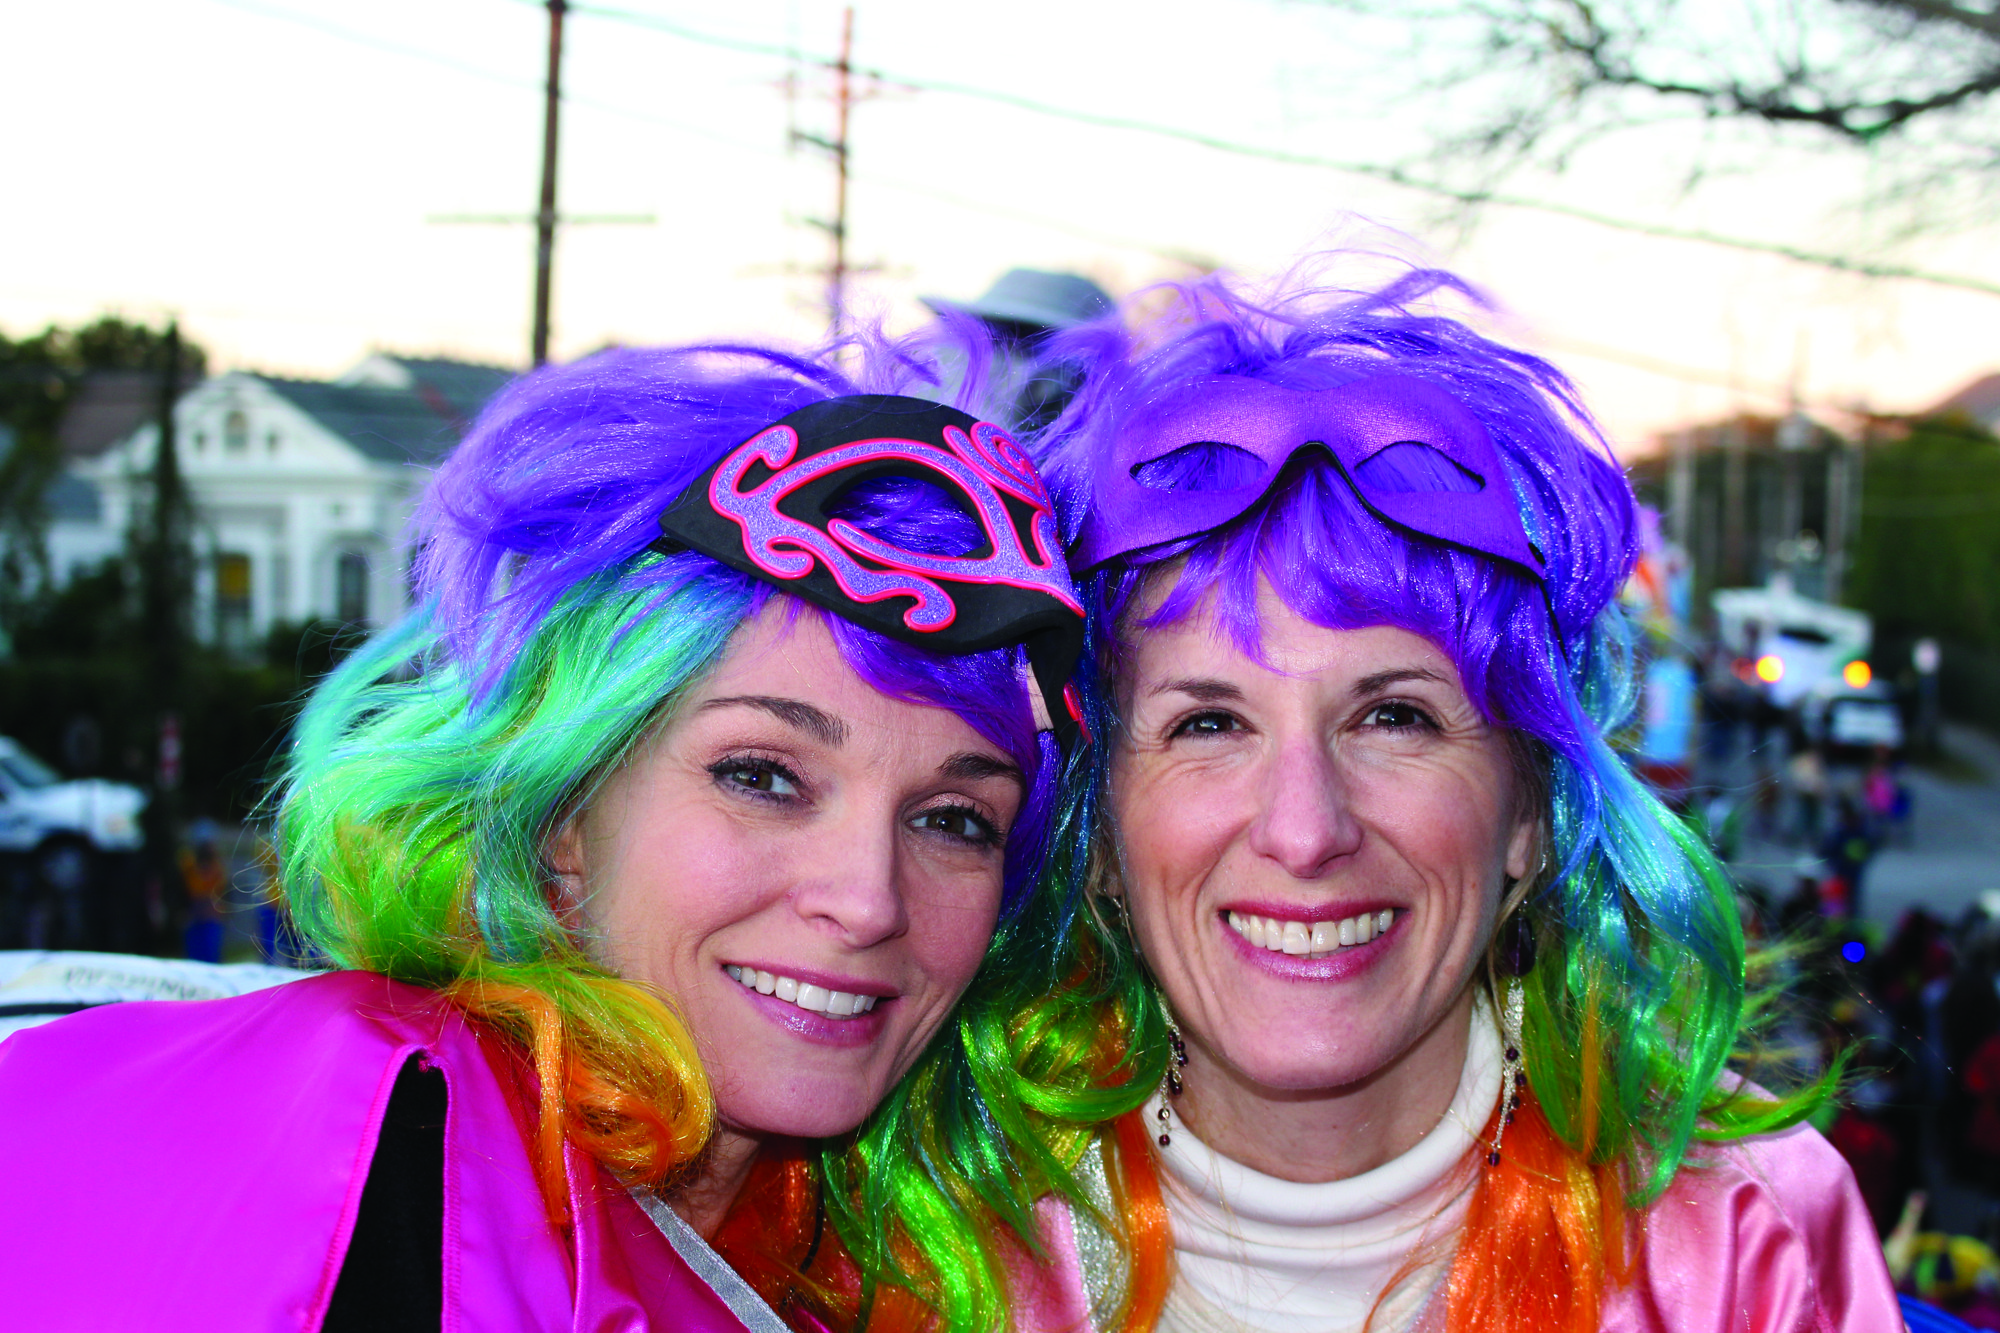 Jennifer Jeanfreau (right) and friend at a previous Mardi Gras. Both ready to ride in Muses wearing colorful wigs and smiles.